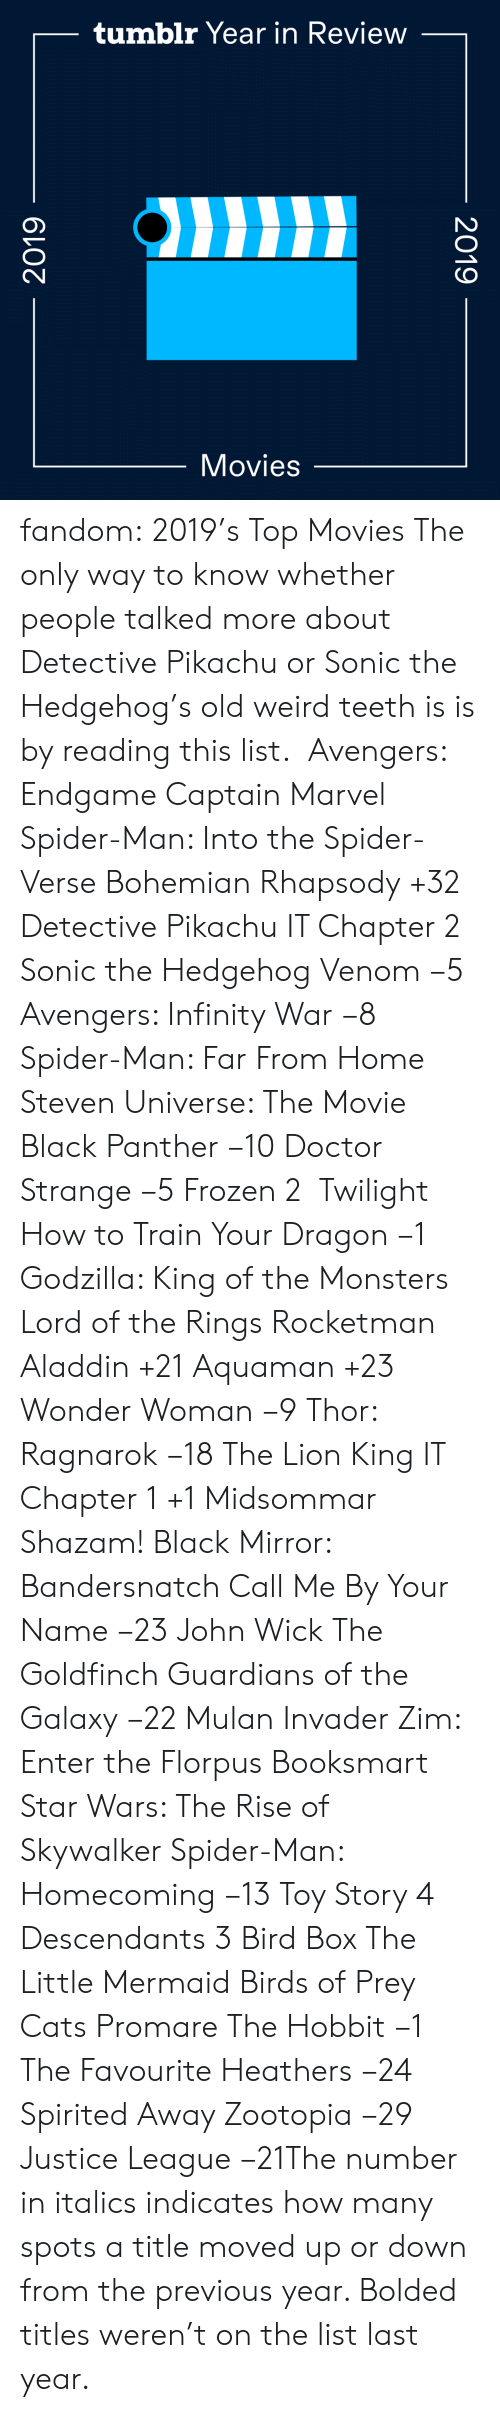 Guardians: tumblr Year in Review  Movies  2019  2019 fandom:  2019's Top Movies  The only way to know whether people talked more about Detective Pikachu or Sonic the Hedgehog's old weird teeth is is by reading this list.   Avengers: Endgame  Captain Marvel  Spider-Man: Into the Spider-Verse  Bohemian Rhapsody +32  Detective Pikachu  IT Chapter 2  Sonic the Hedgehog  Venom −5  Avengers: Infinity War −8  Spider-Man: Far From Home  Steven Universe: The Movie  Black Panther −10  Doctor Strange −5  Frozen 2   Twilight  How to Train Your Dragon −1  Godzilla: King of the Monsters  Lord of the Rings  Rocketman  Aladdin +21  Aquaman +23  Wonder Woman −9  Thor: Ragnarok −18  The Lion King  IT Chapter 1 +1  Midsommar  Shazam!  Black Mirror: Bandersnatch  Call Me By Your Name −23  John Wick  The Goldfinch  Guardians of the Galaxy −22  Mulan  Invader Zim: Enter the Florpus  Booksmart  Star Wars: The Rise of Skywalker  Spider-Man: Homecoming −13  Toy Story 4  Descendants 3  Bird Box  The Little Mermaid  Birds of Prey  Cats  Promare  The Hobbit −1  The Favourite  Heathers −24  Spirited Away  Zootopia −29 Justice League −21The number in italics indicates how many spots a title moved up or down from the previous year. Bolded titles weren't on the list last year.